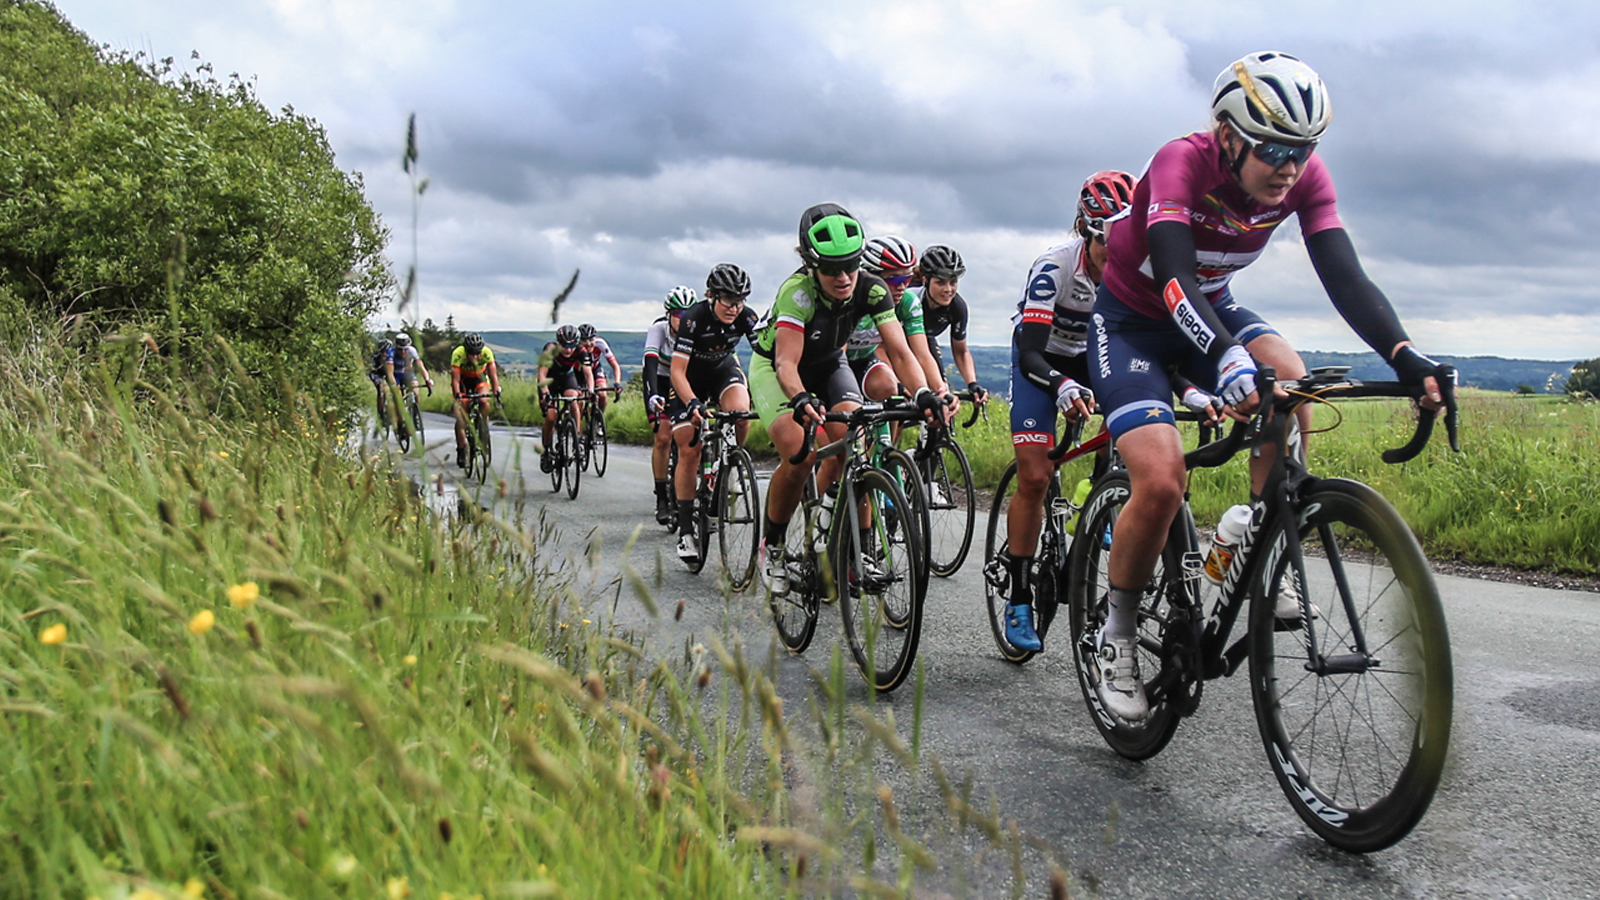 North Wales to host final stage of the OVO Energy Women's Tour